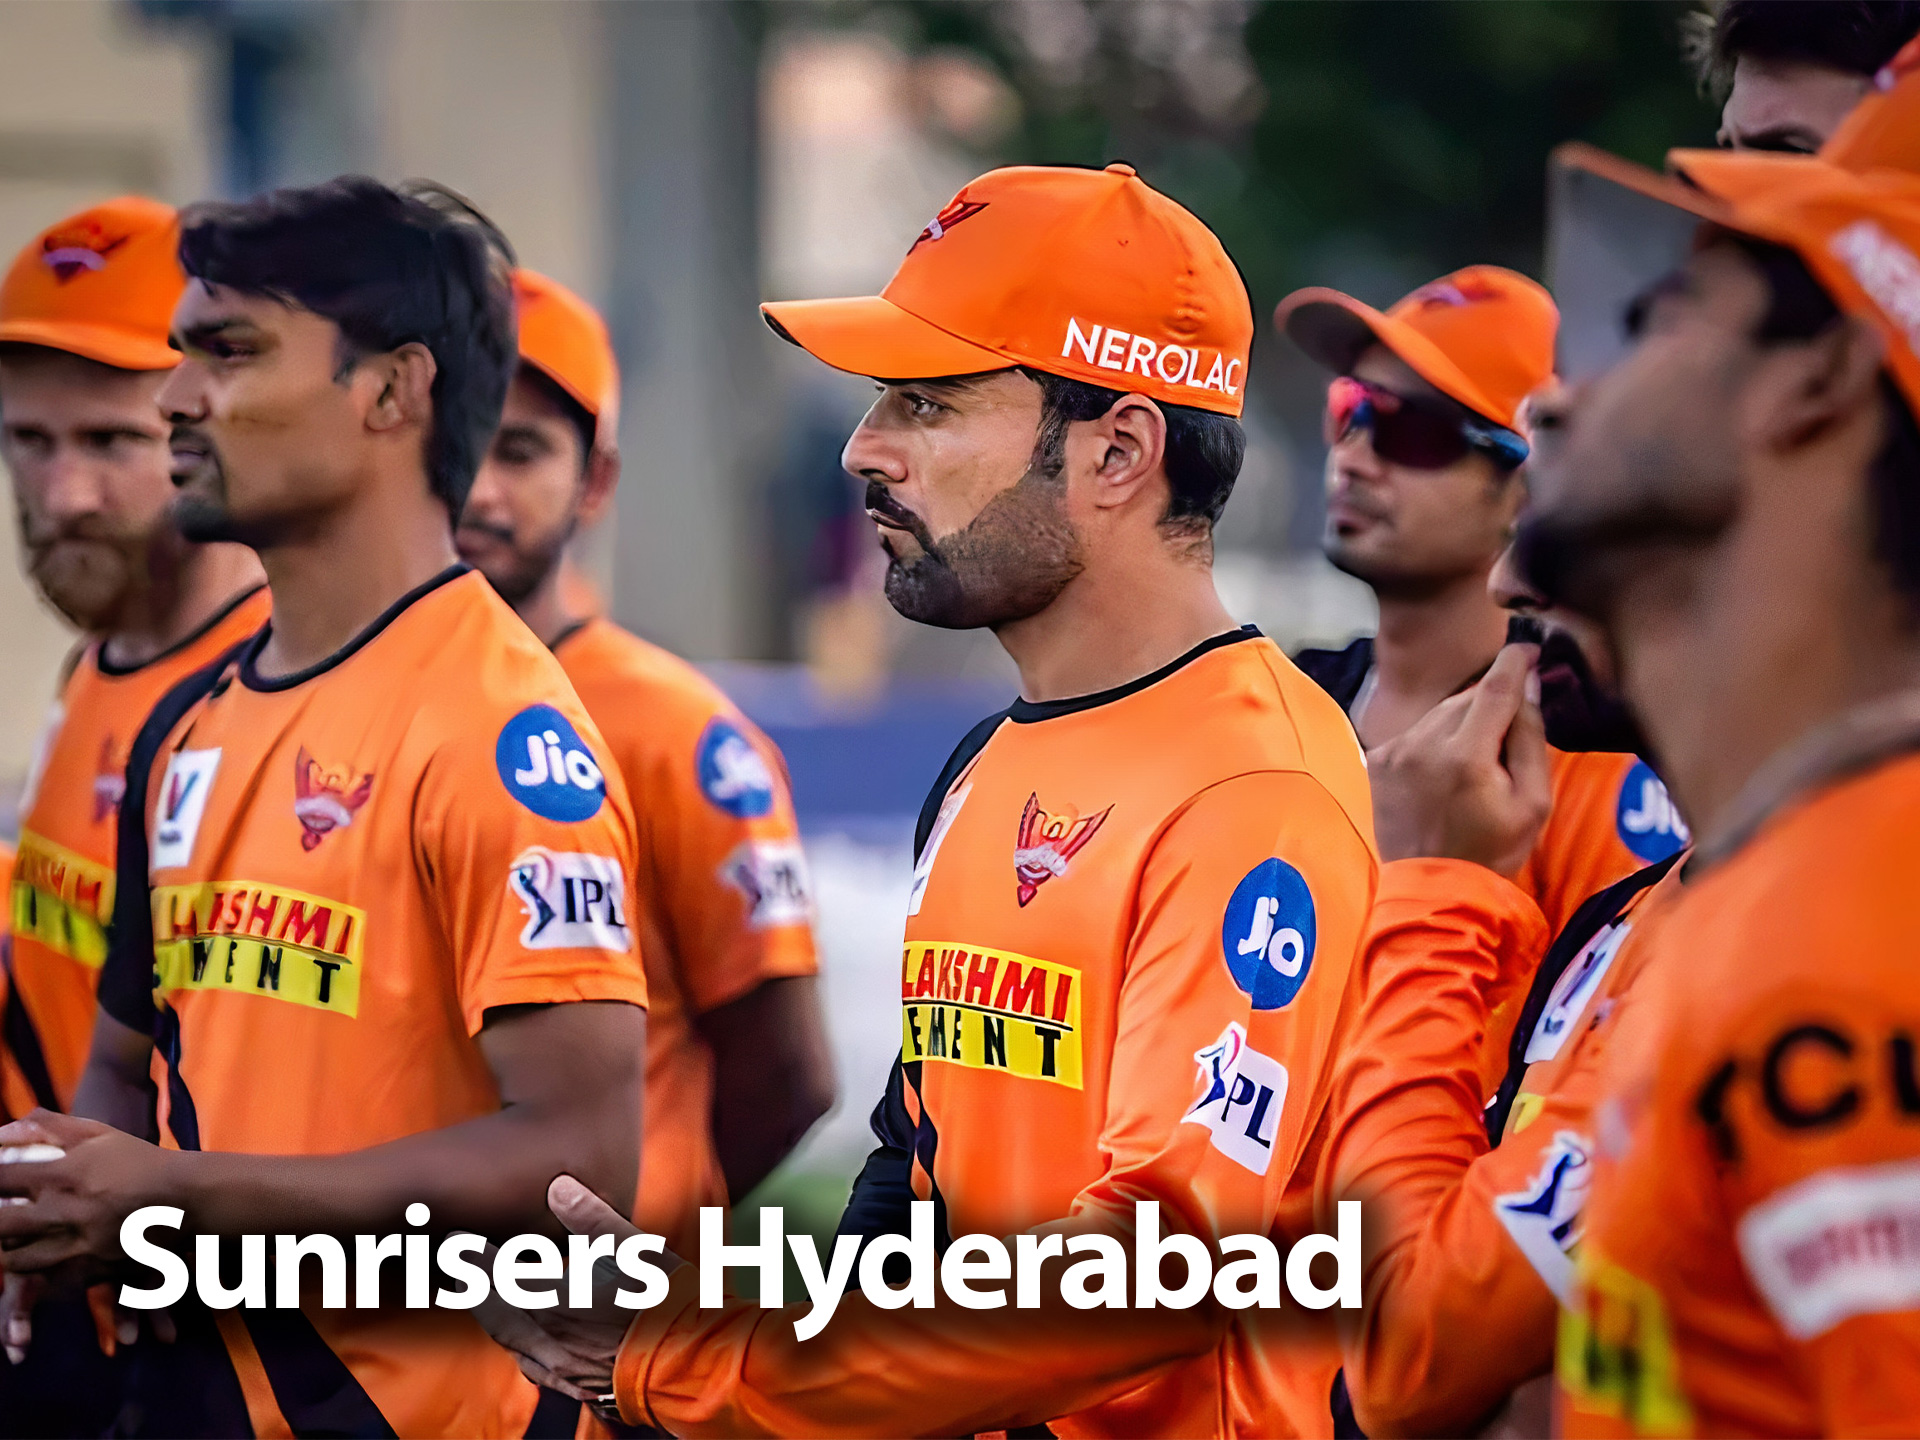 Place your bets on this team during IPL at the most convenient cricket betting sites.